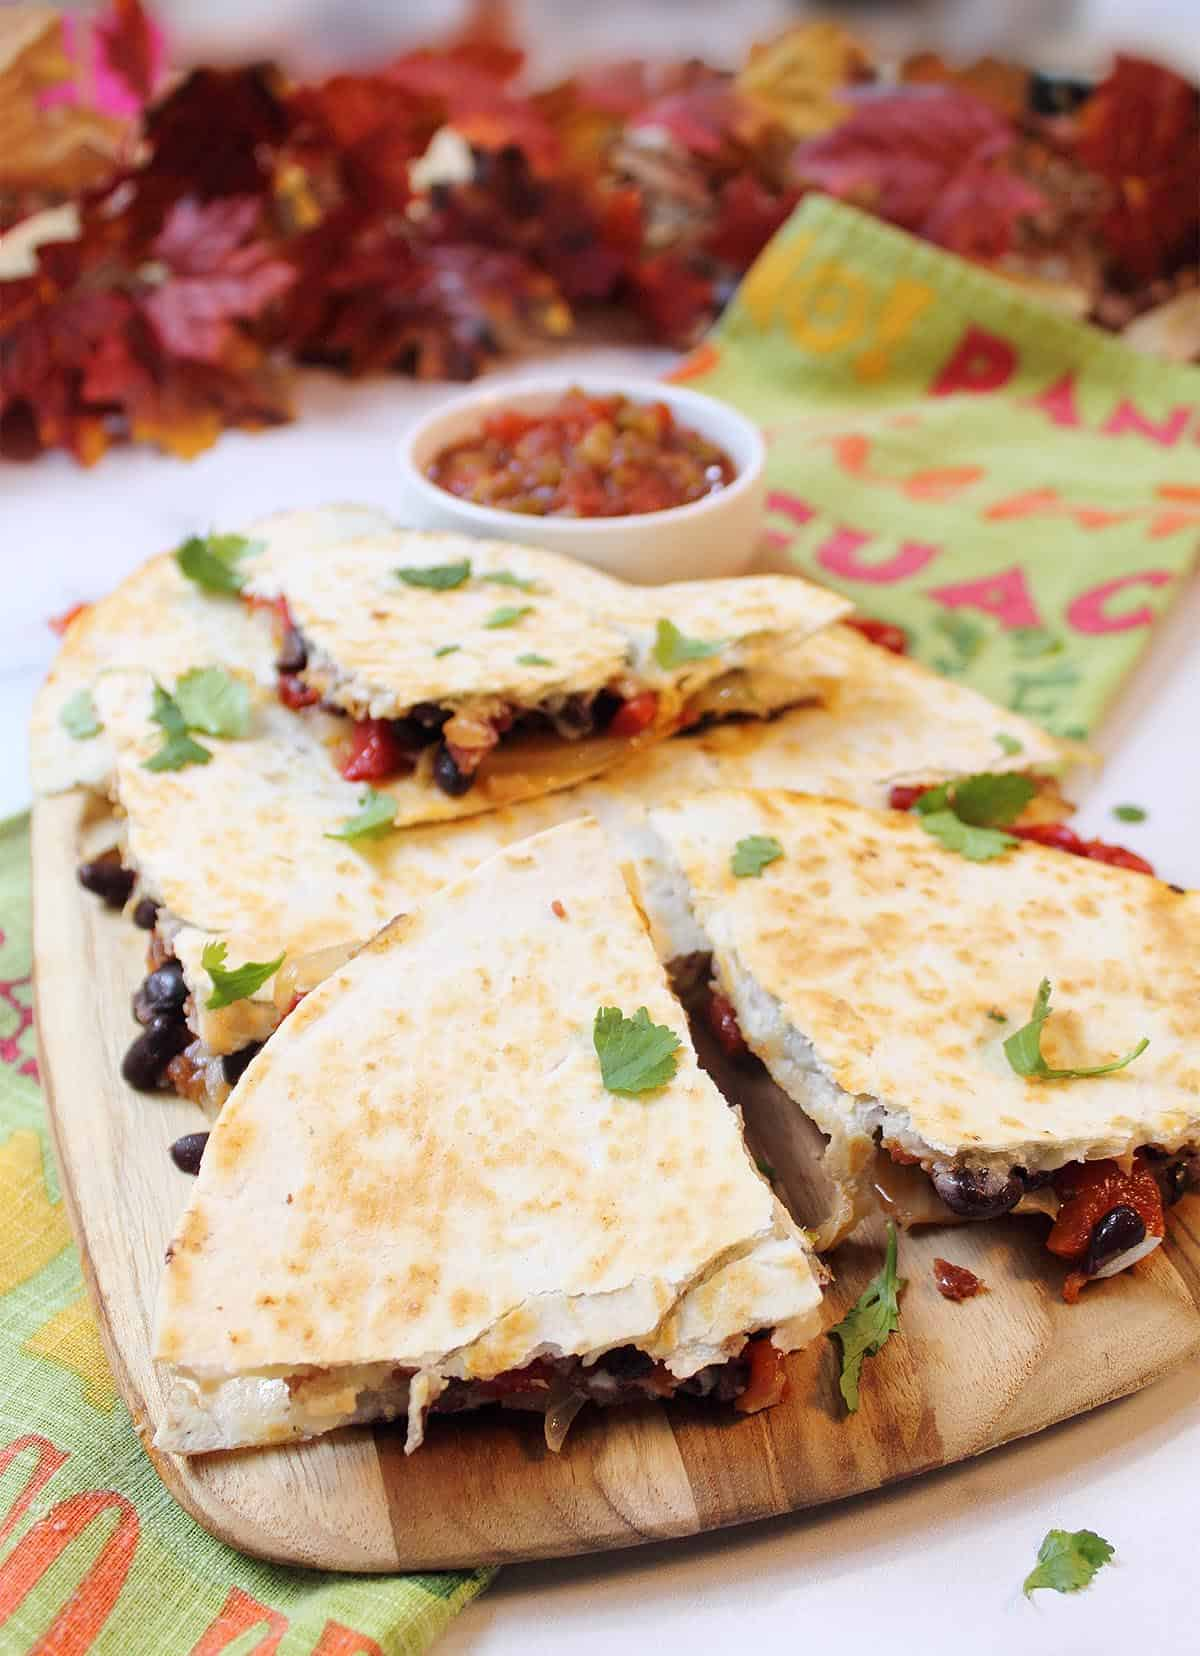 Cut roasted pepper quesadillas on board showing with salsa in back on top of Spanish worded towel.